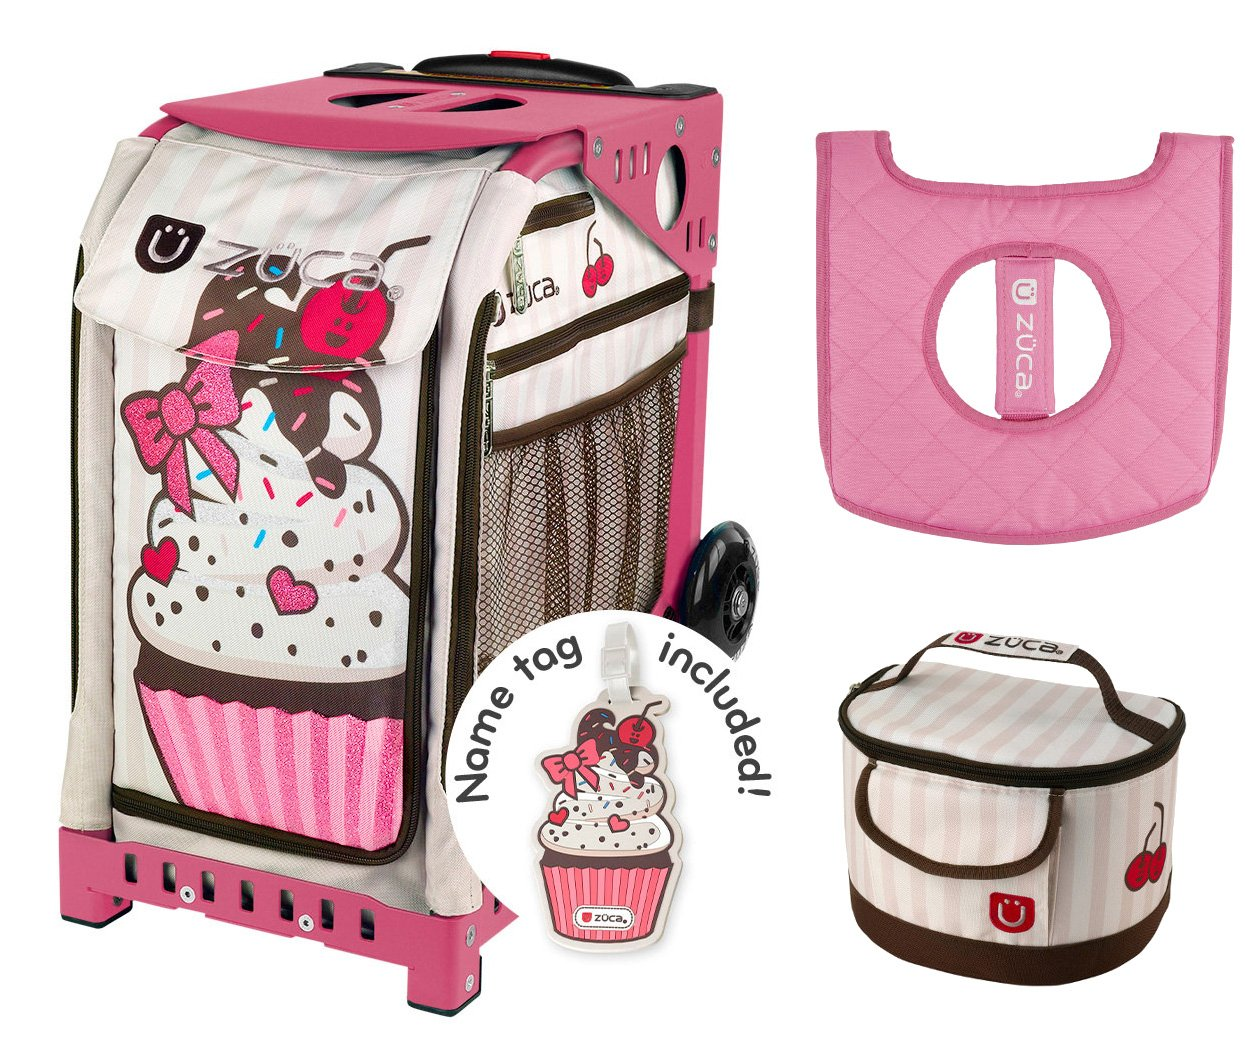 Zuca Sport Bag - Sprinklez with Gift Lunchbox and Seat Cover (Pink Frame) by ZUCA